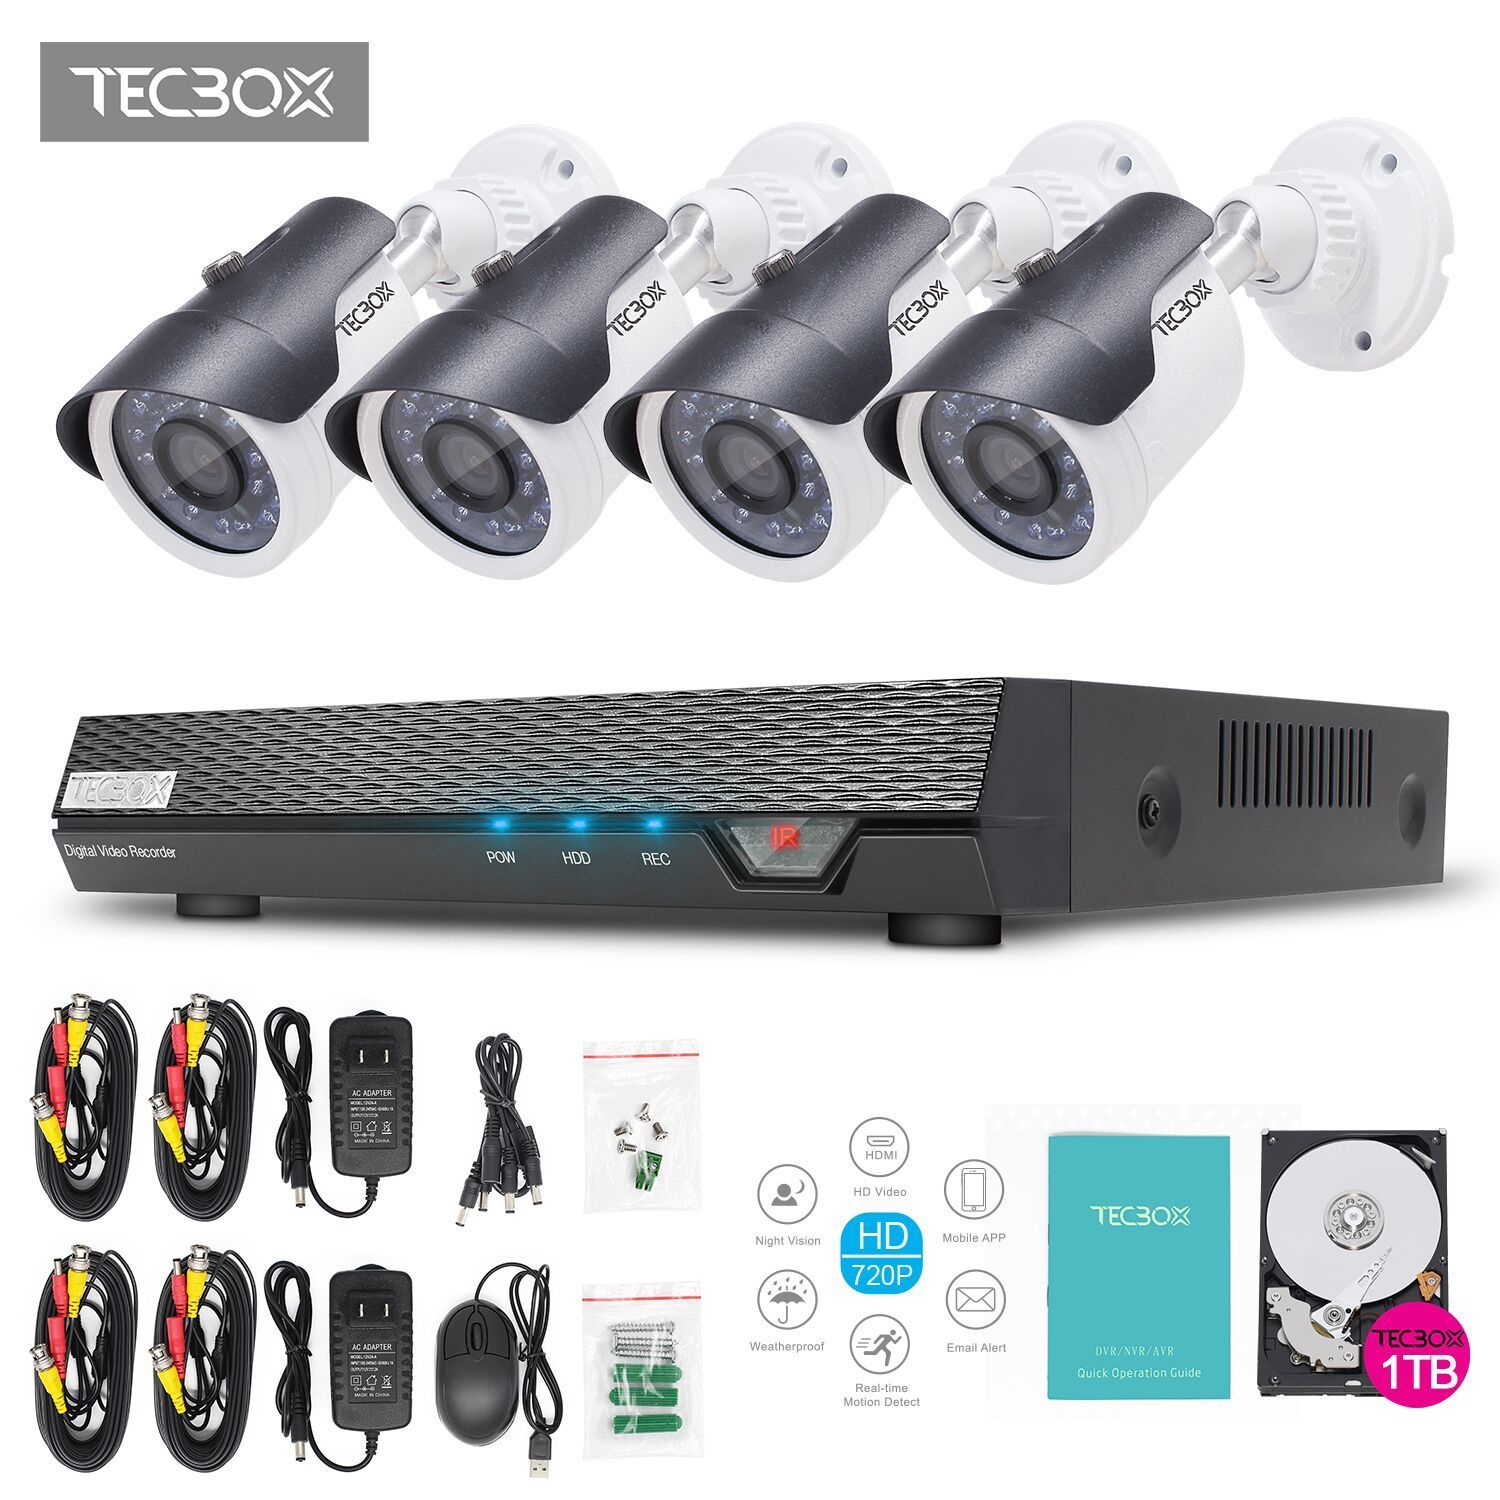 TECBOX AHD DVR 4 Channel CCTV Security Camera System with 4 HD 720P Outdoor CCTV Cameras Remote View Motion Detection 1TB Hard Drive Included